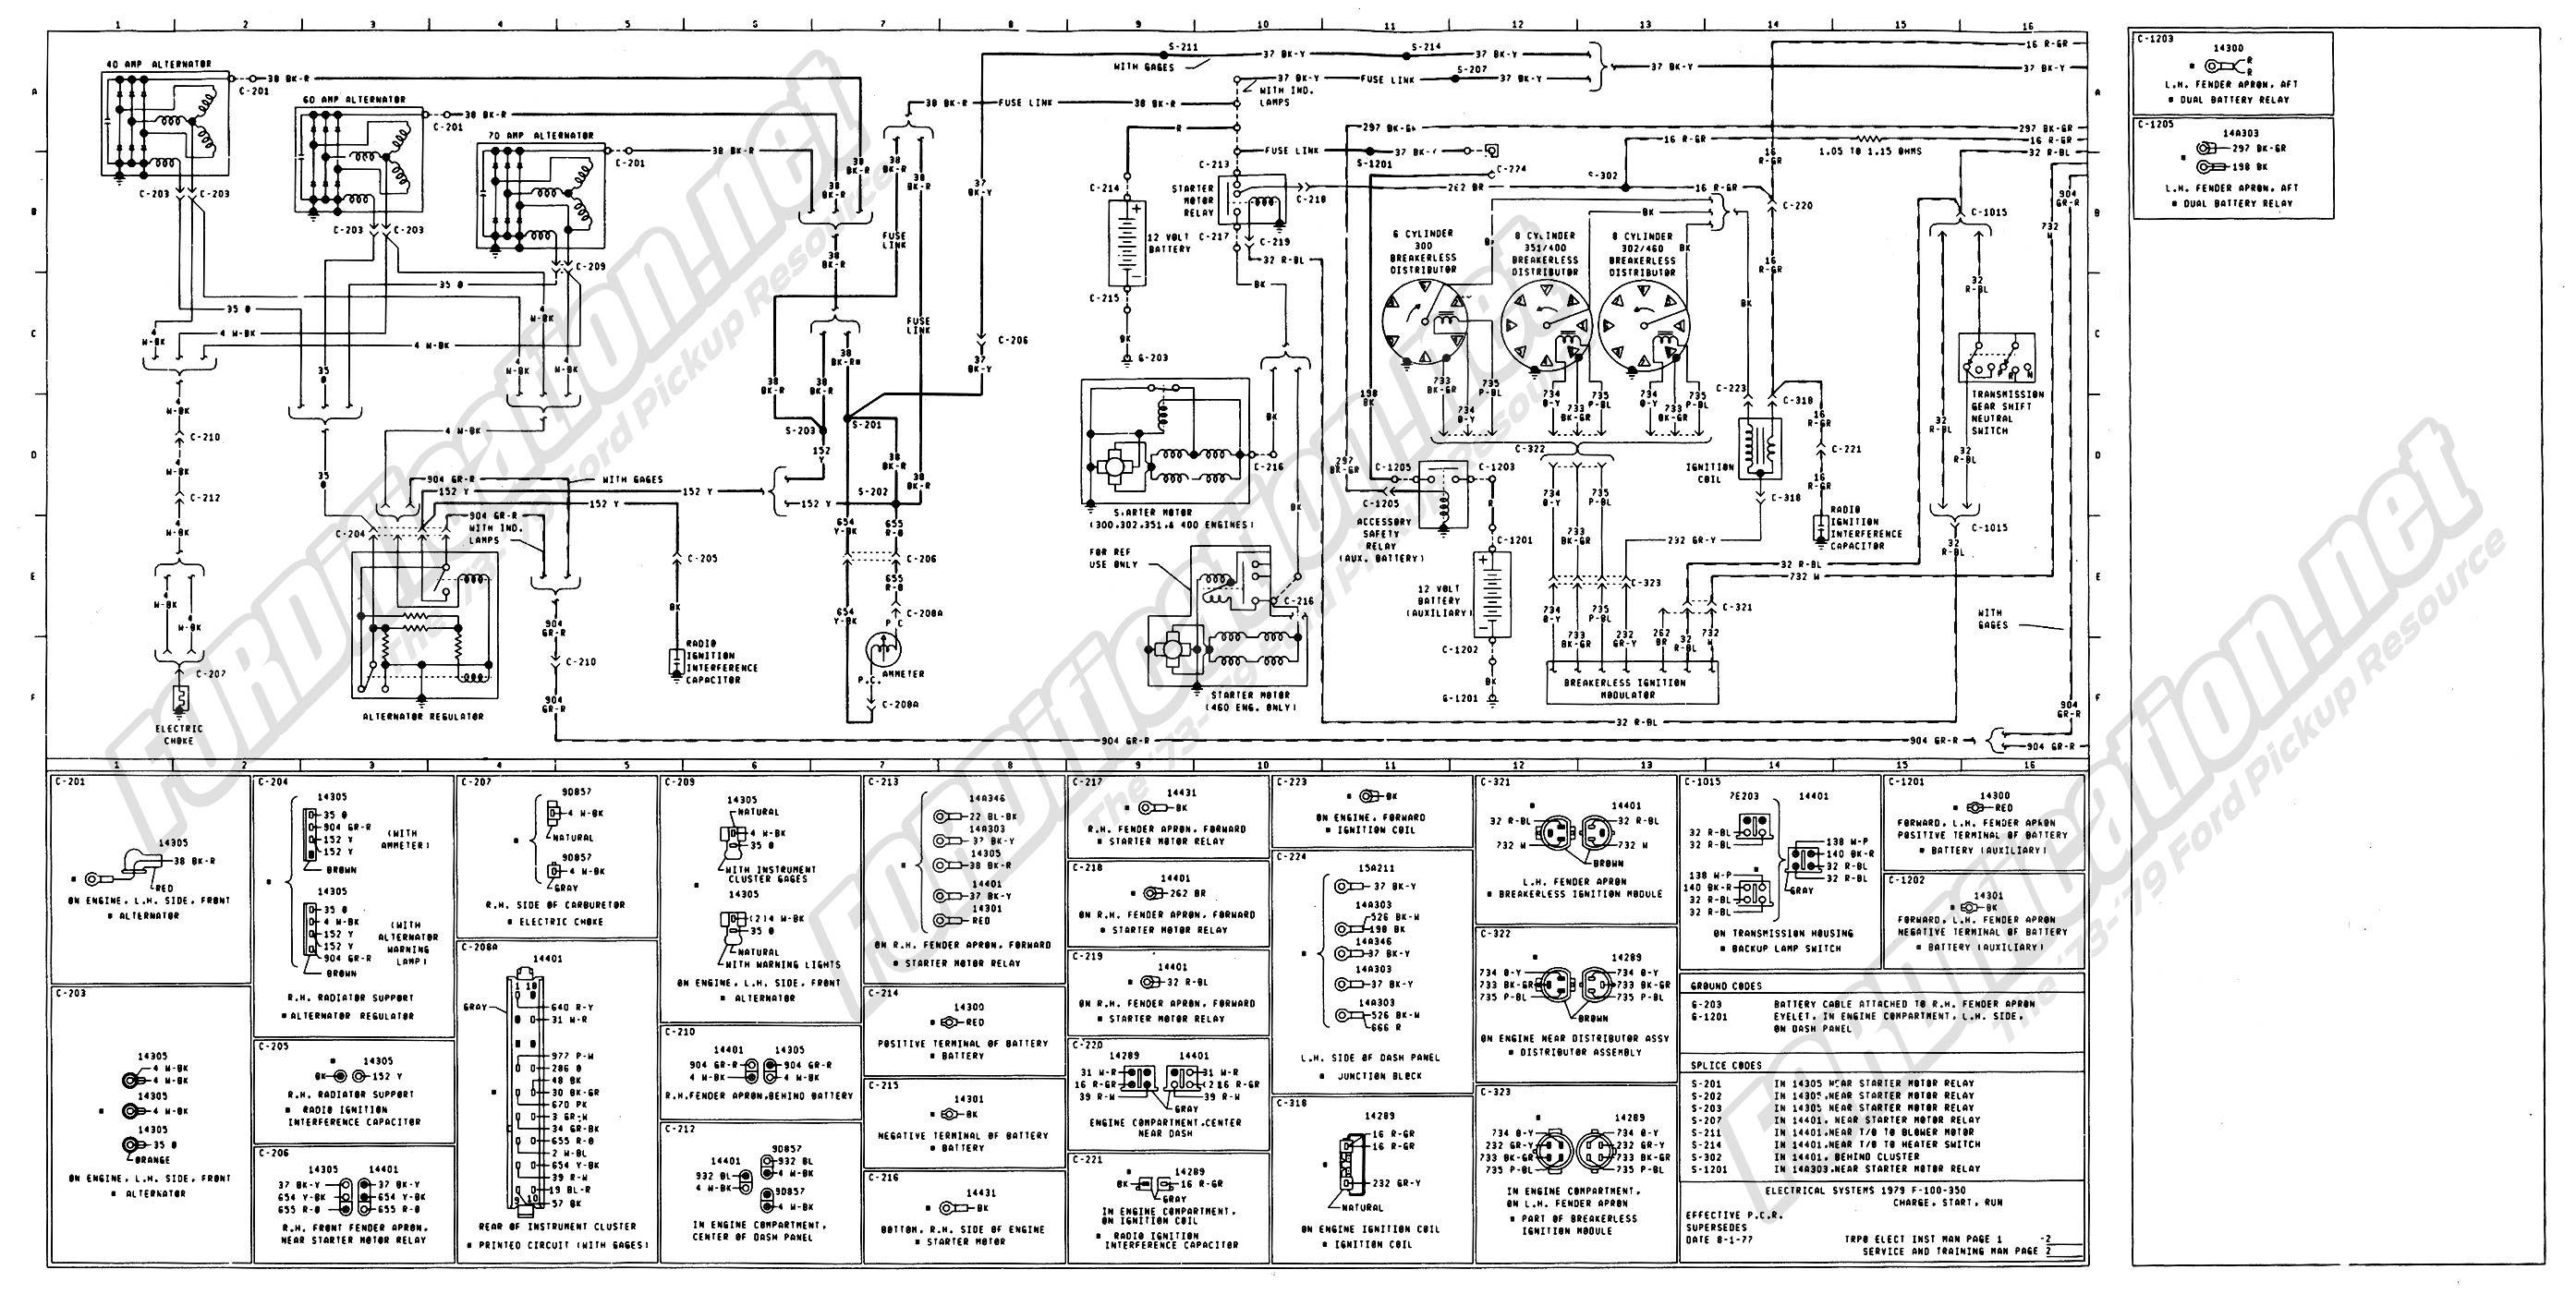 1978 f250 wiring diagram wiring diagram schematics78 ford wiring diagram wiring diagram schematics 1978 ford radio